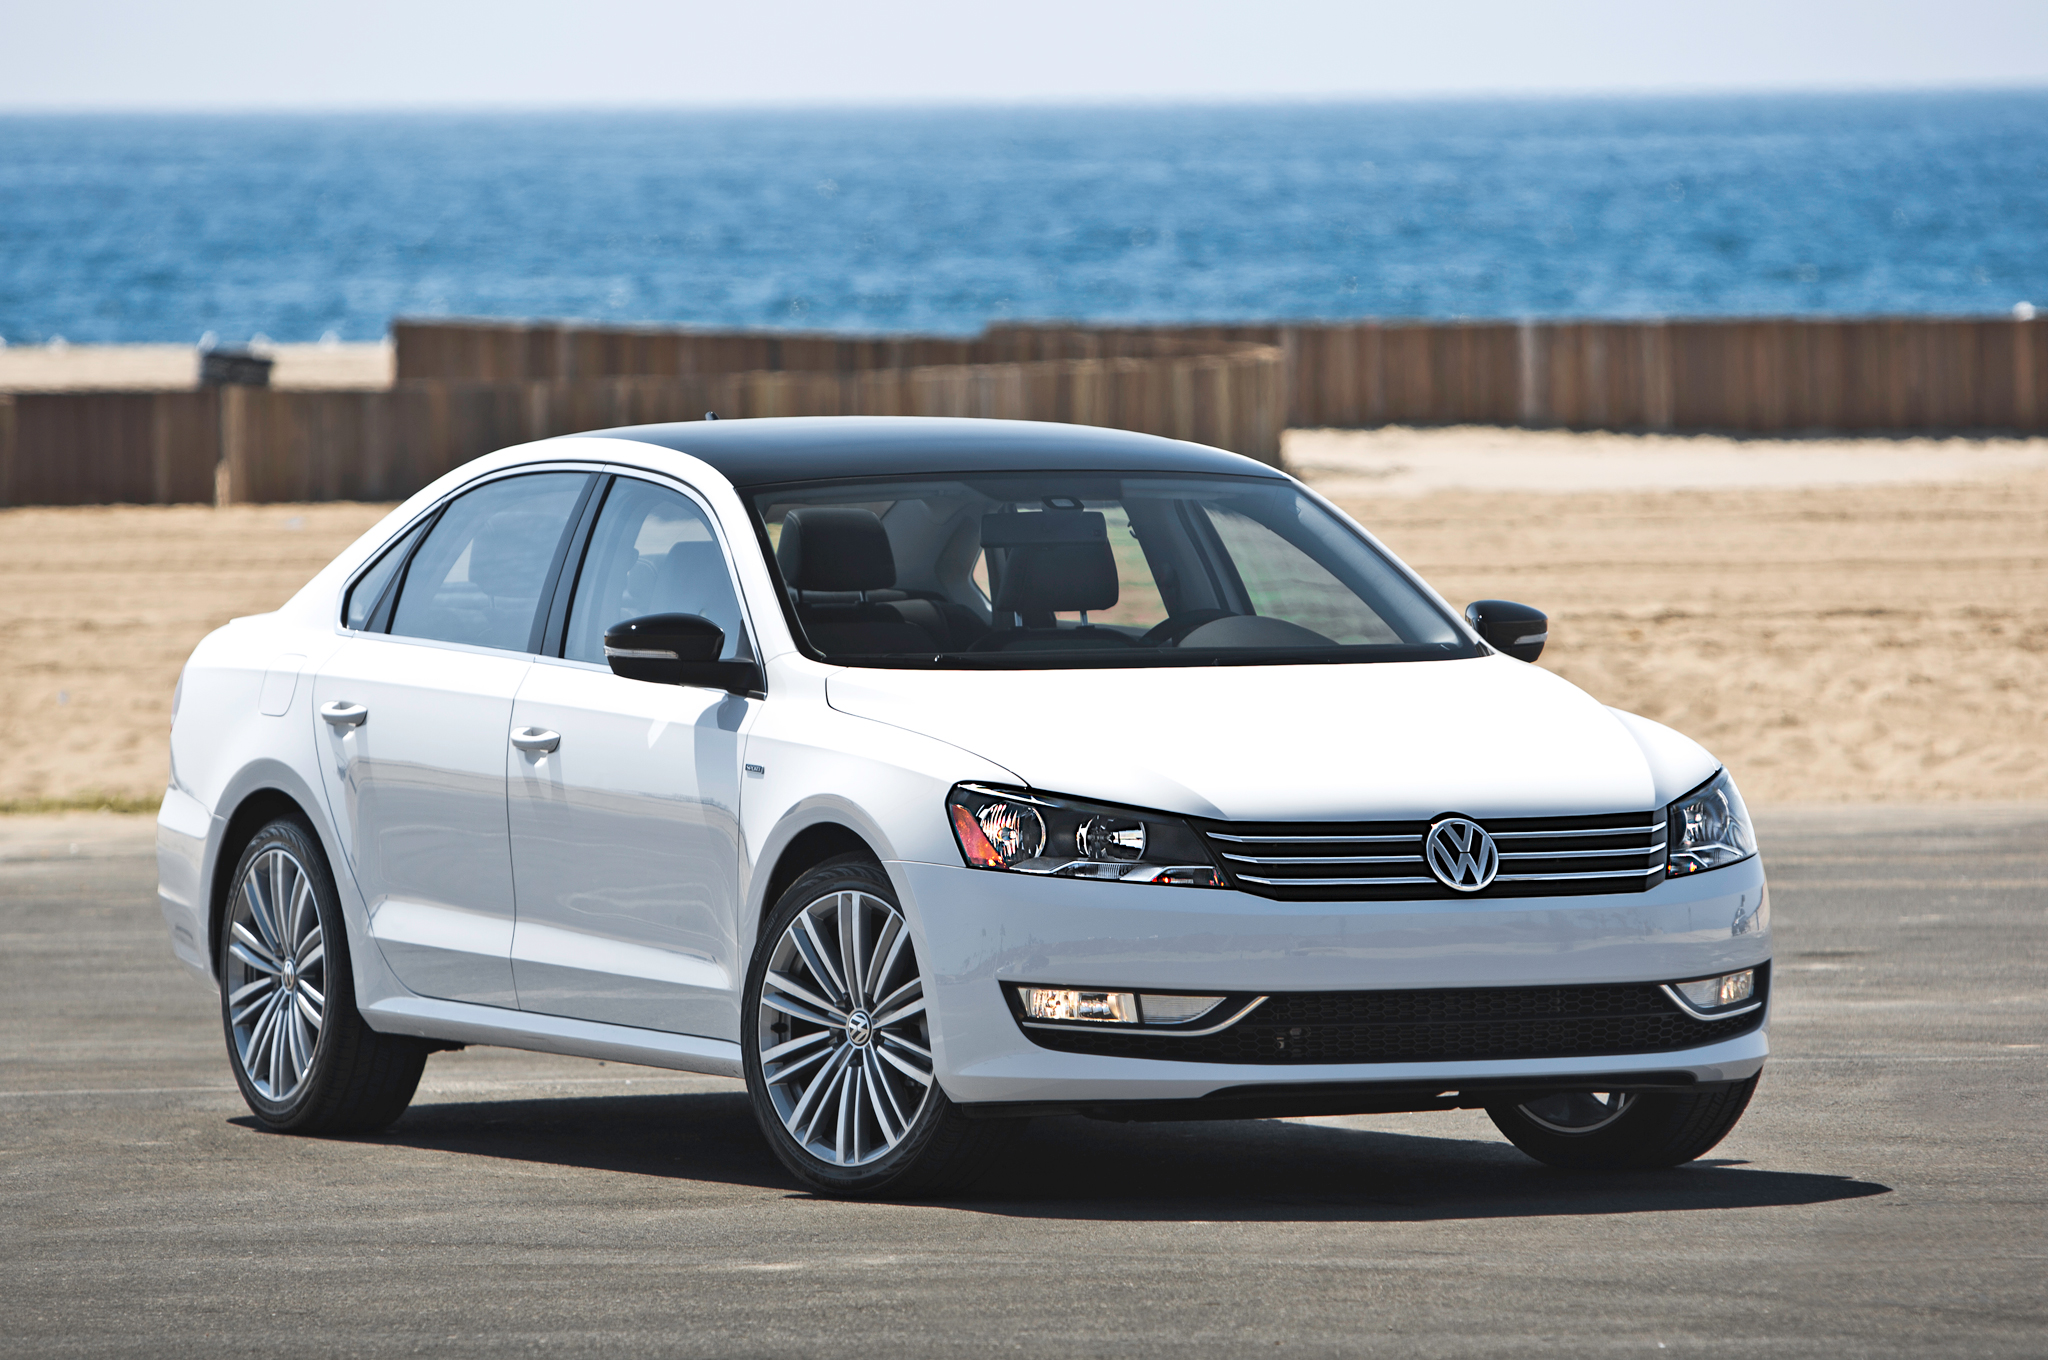 Volkswagen Passat 3.6 2014 photo - 11